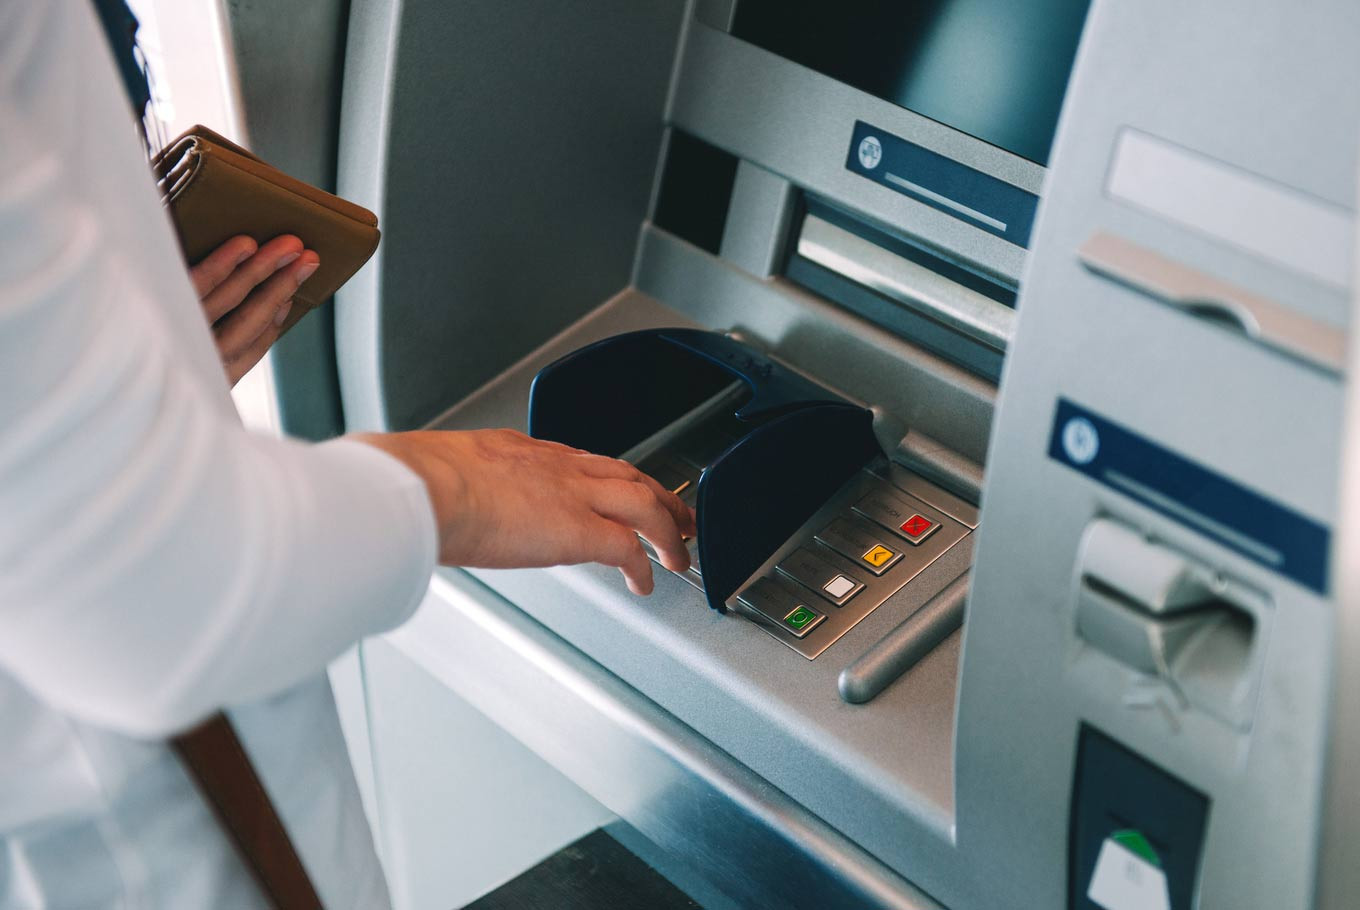 Four Bulgarians arrested for alleged ATM scam